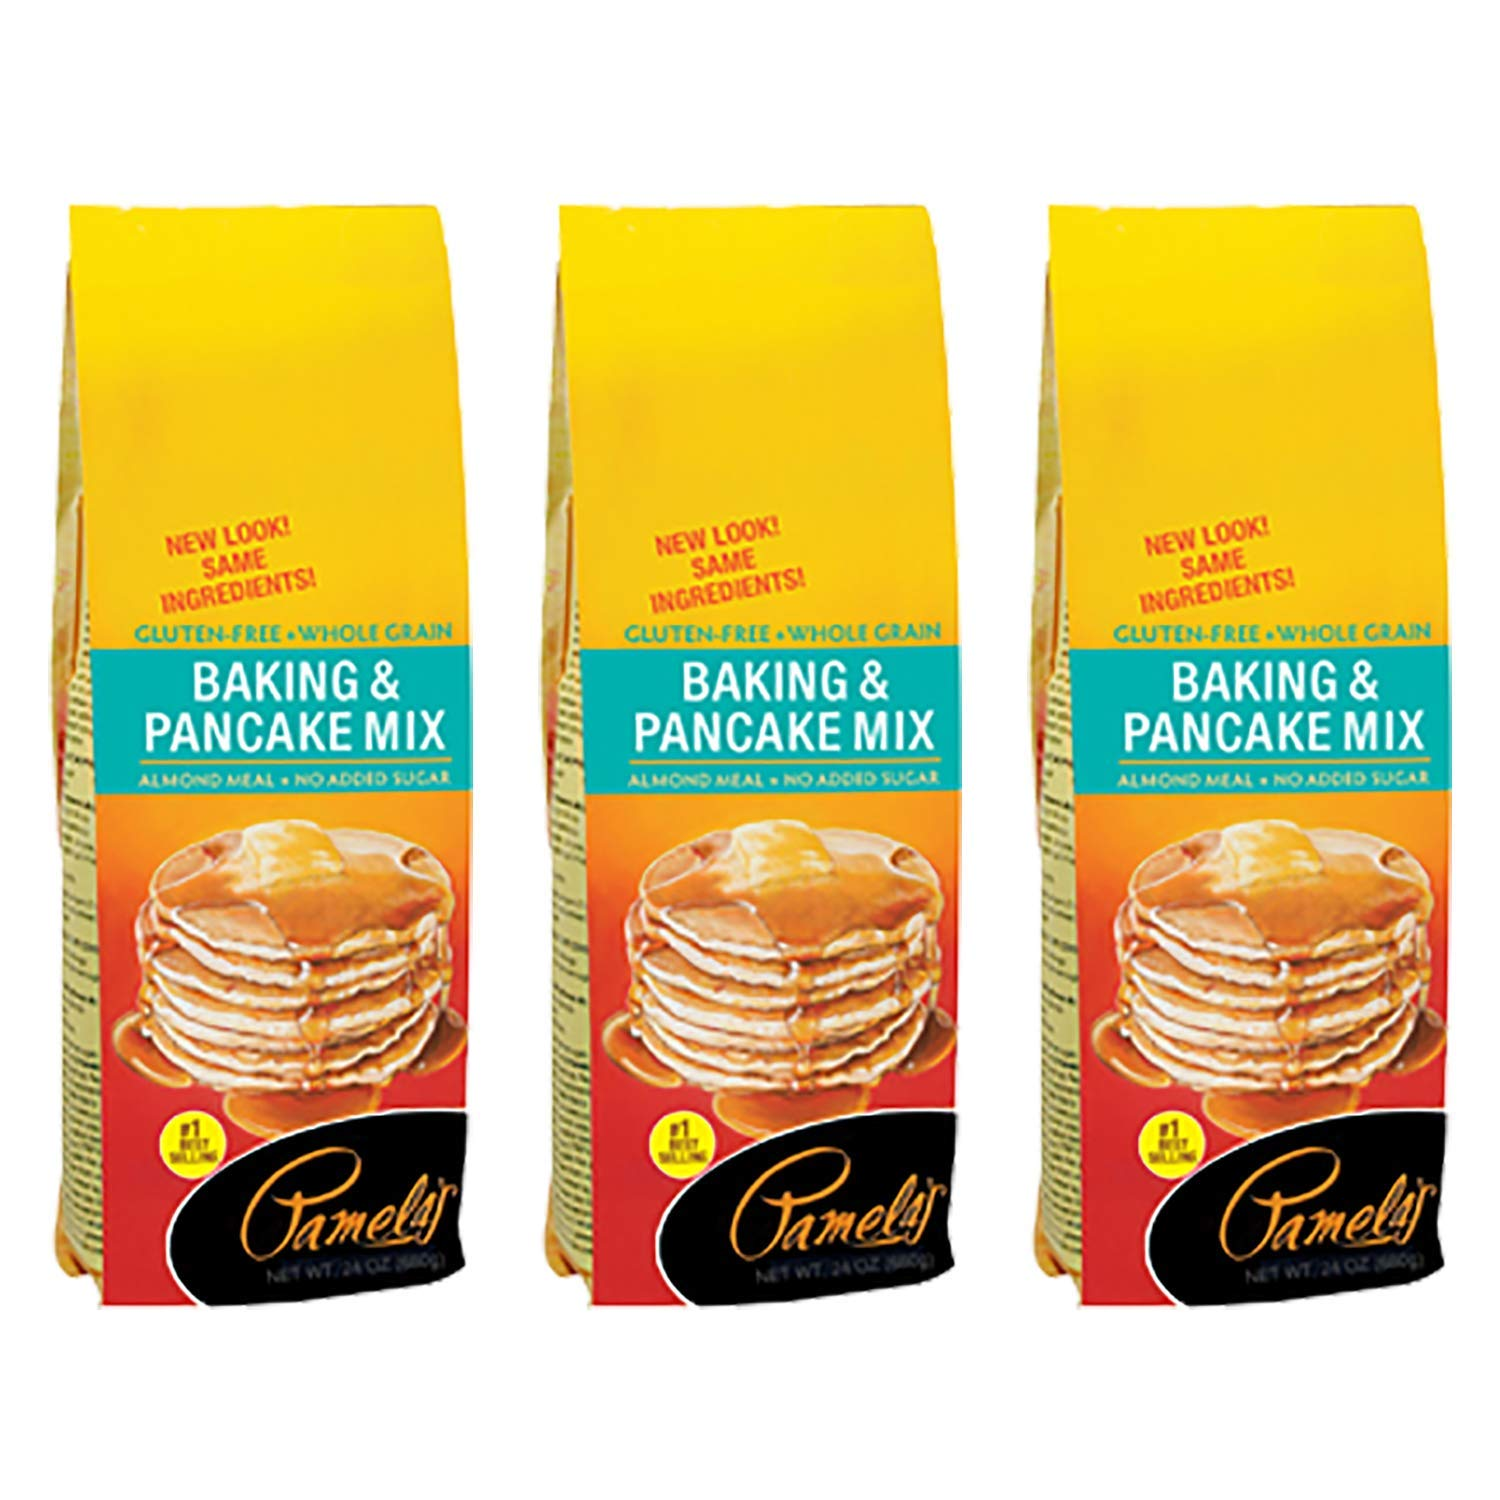 Pamela's Products Gluten and Wheat Free Baking and Pancake Mix - 24 oz- (Pack - 3) by Pamela's Products